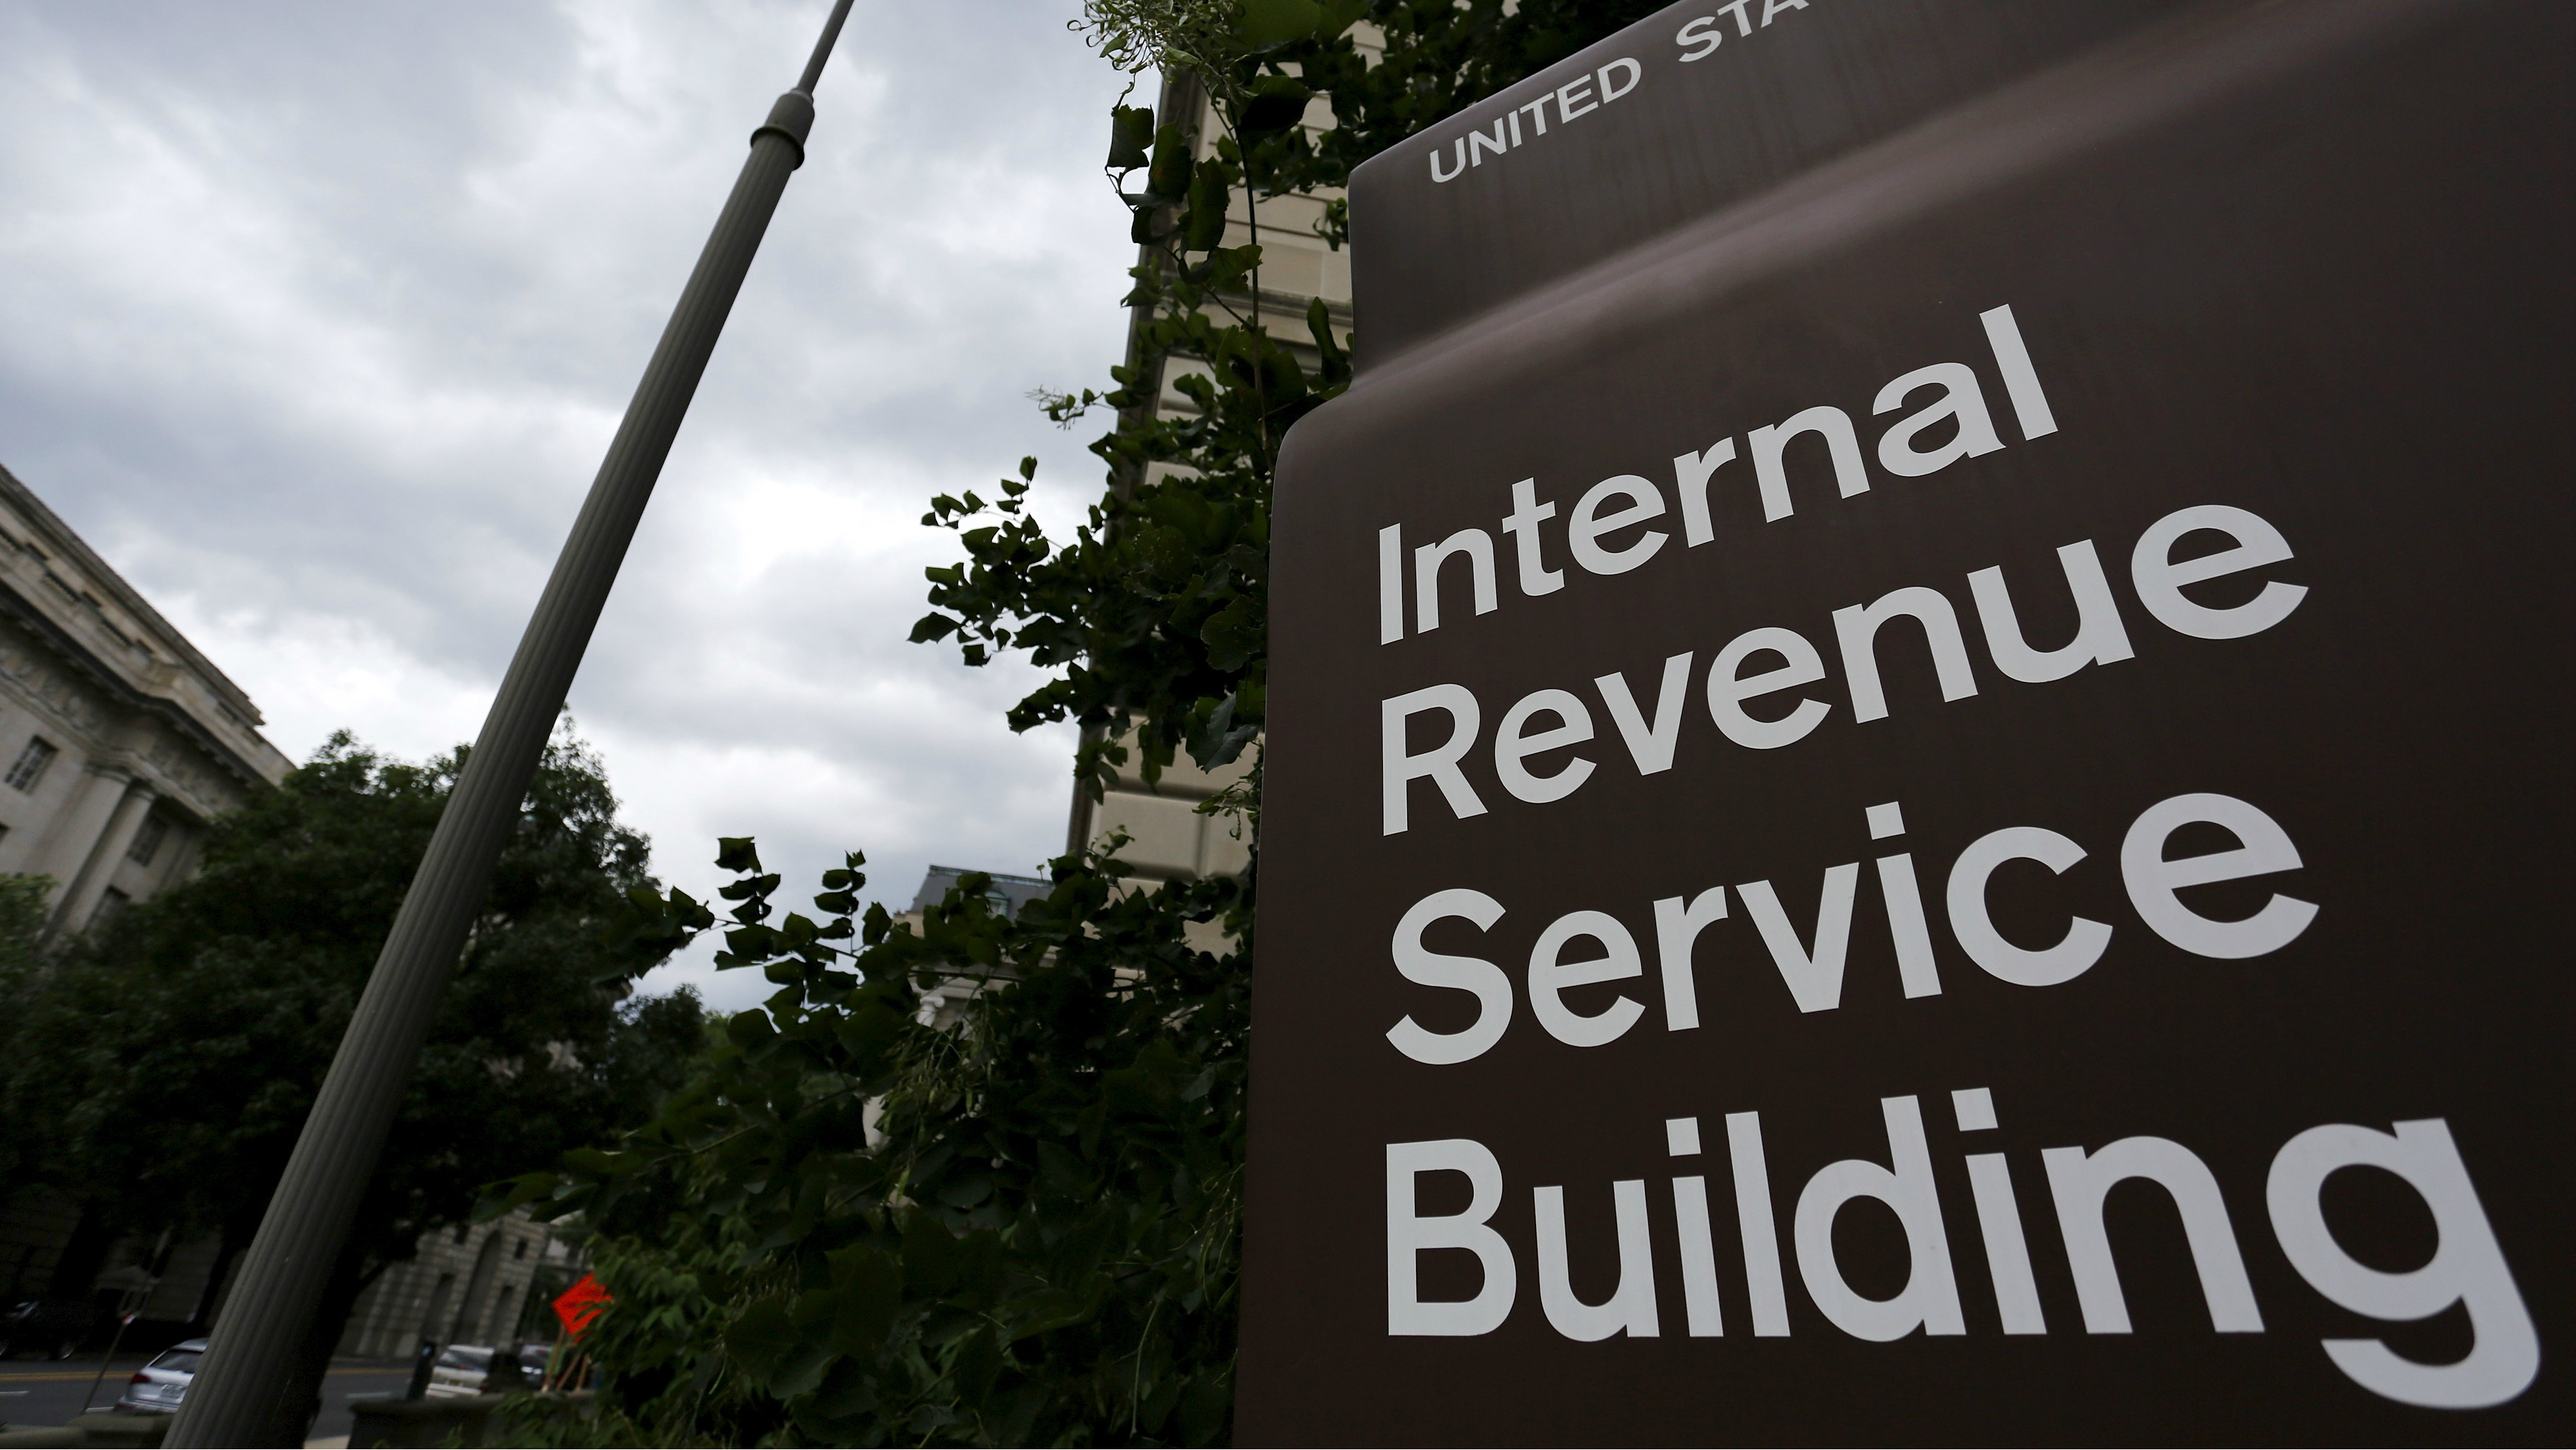 The front of the Internal Revenue Service building.